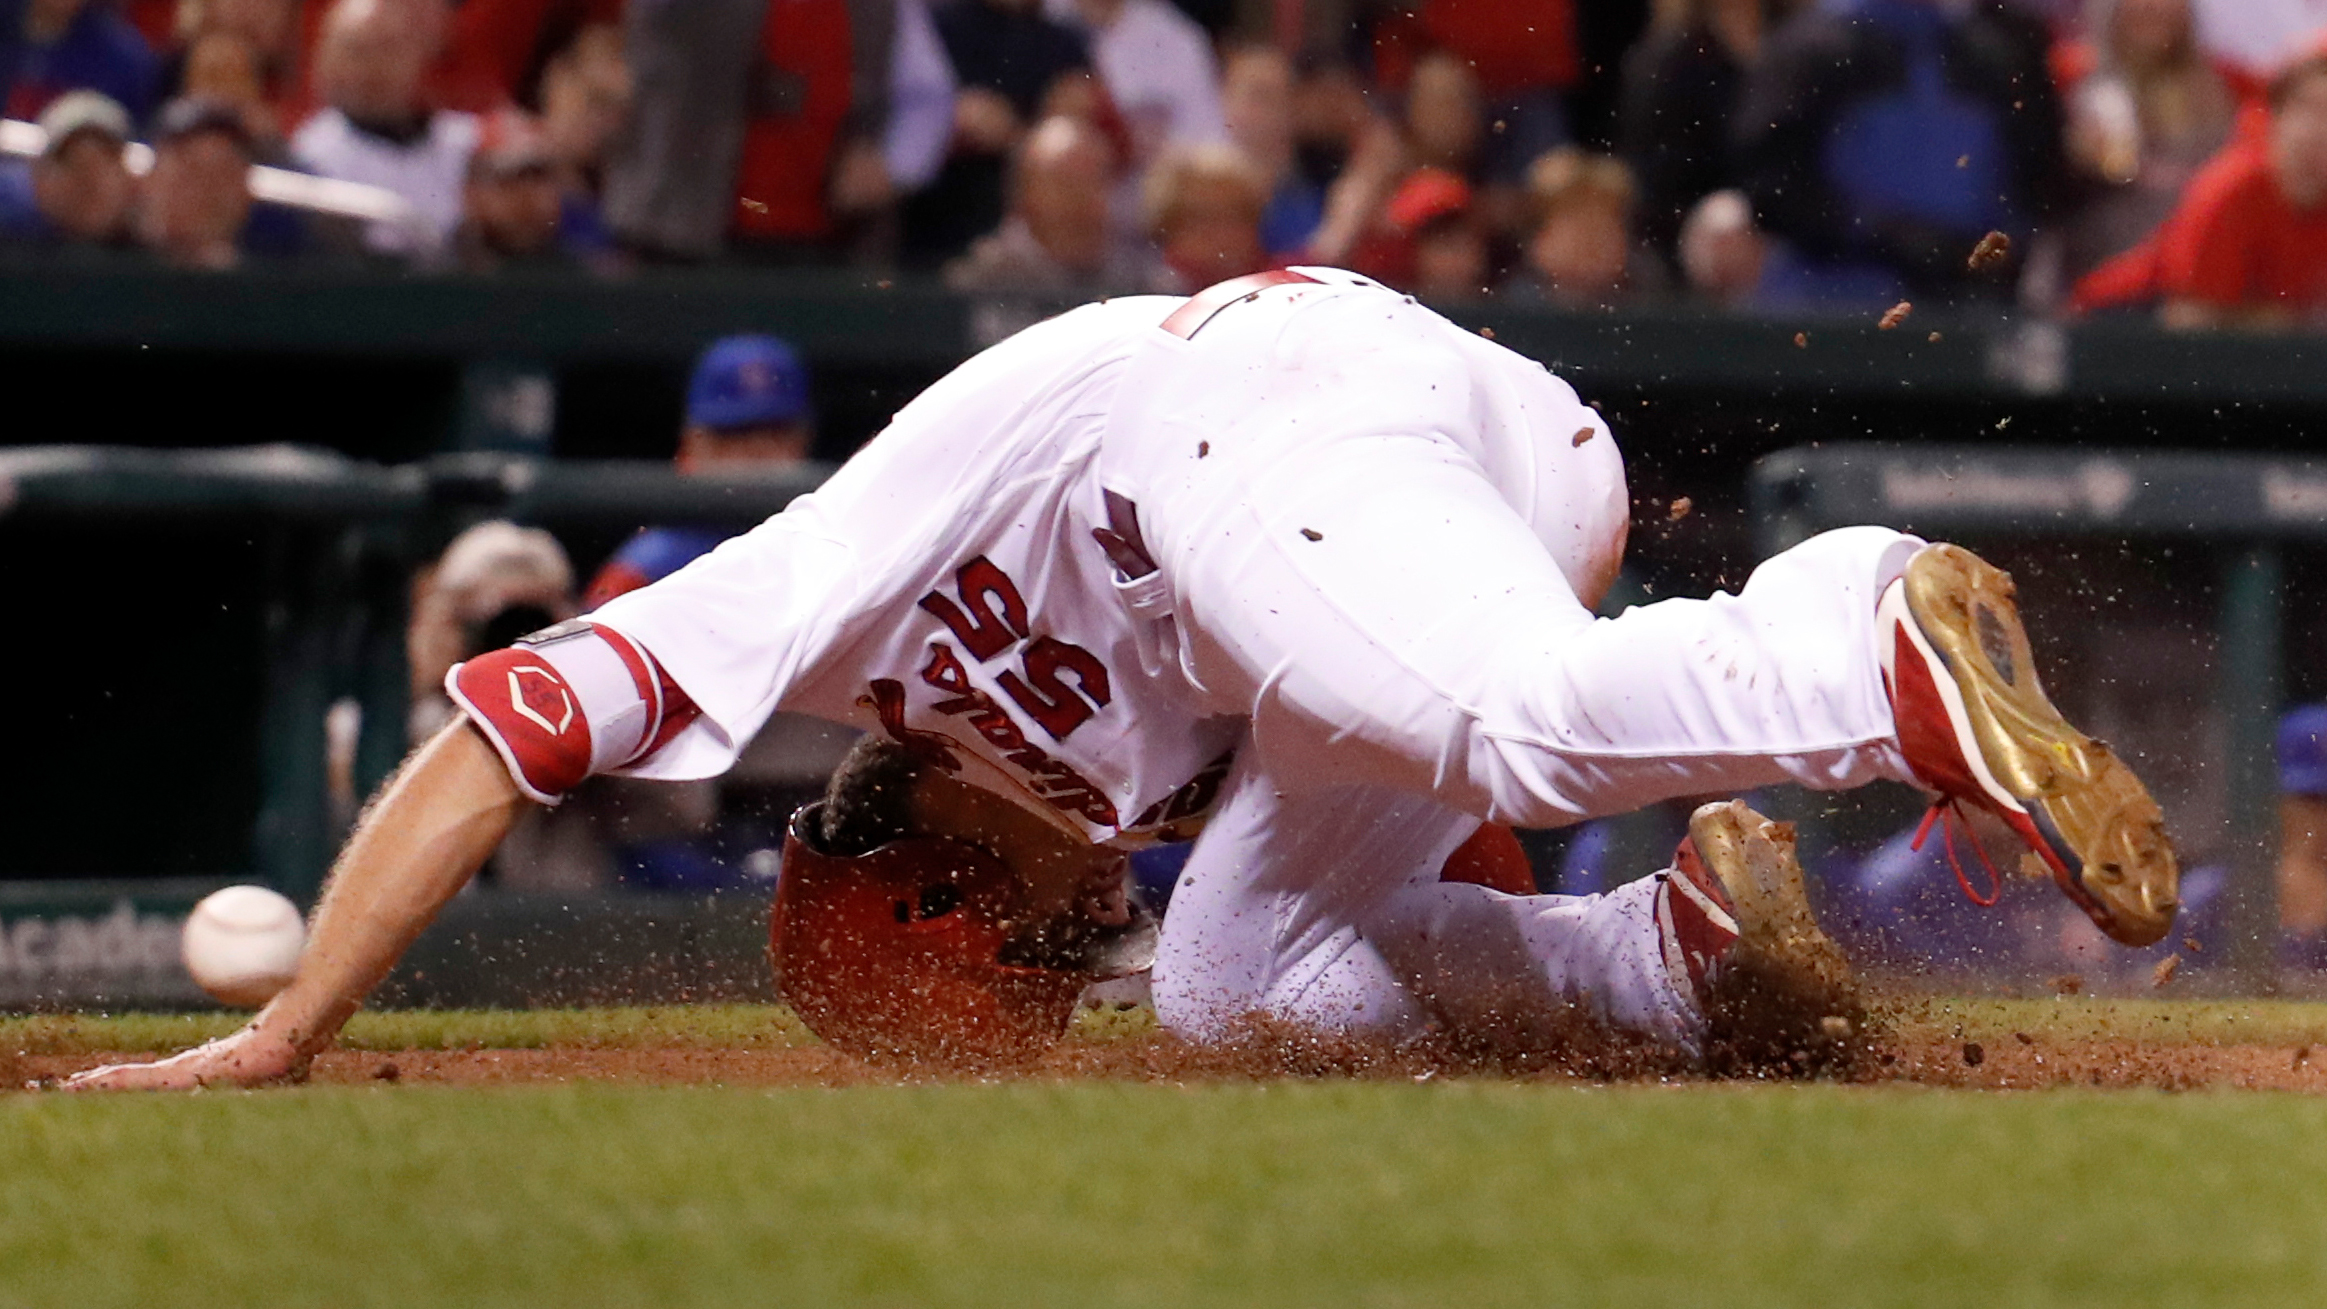 Piscotty leaves game early after being hit in head by throw